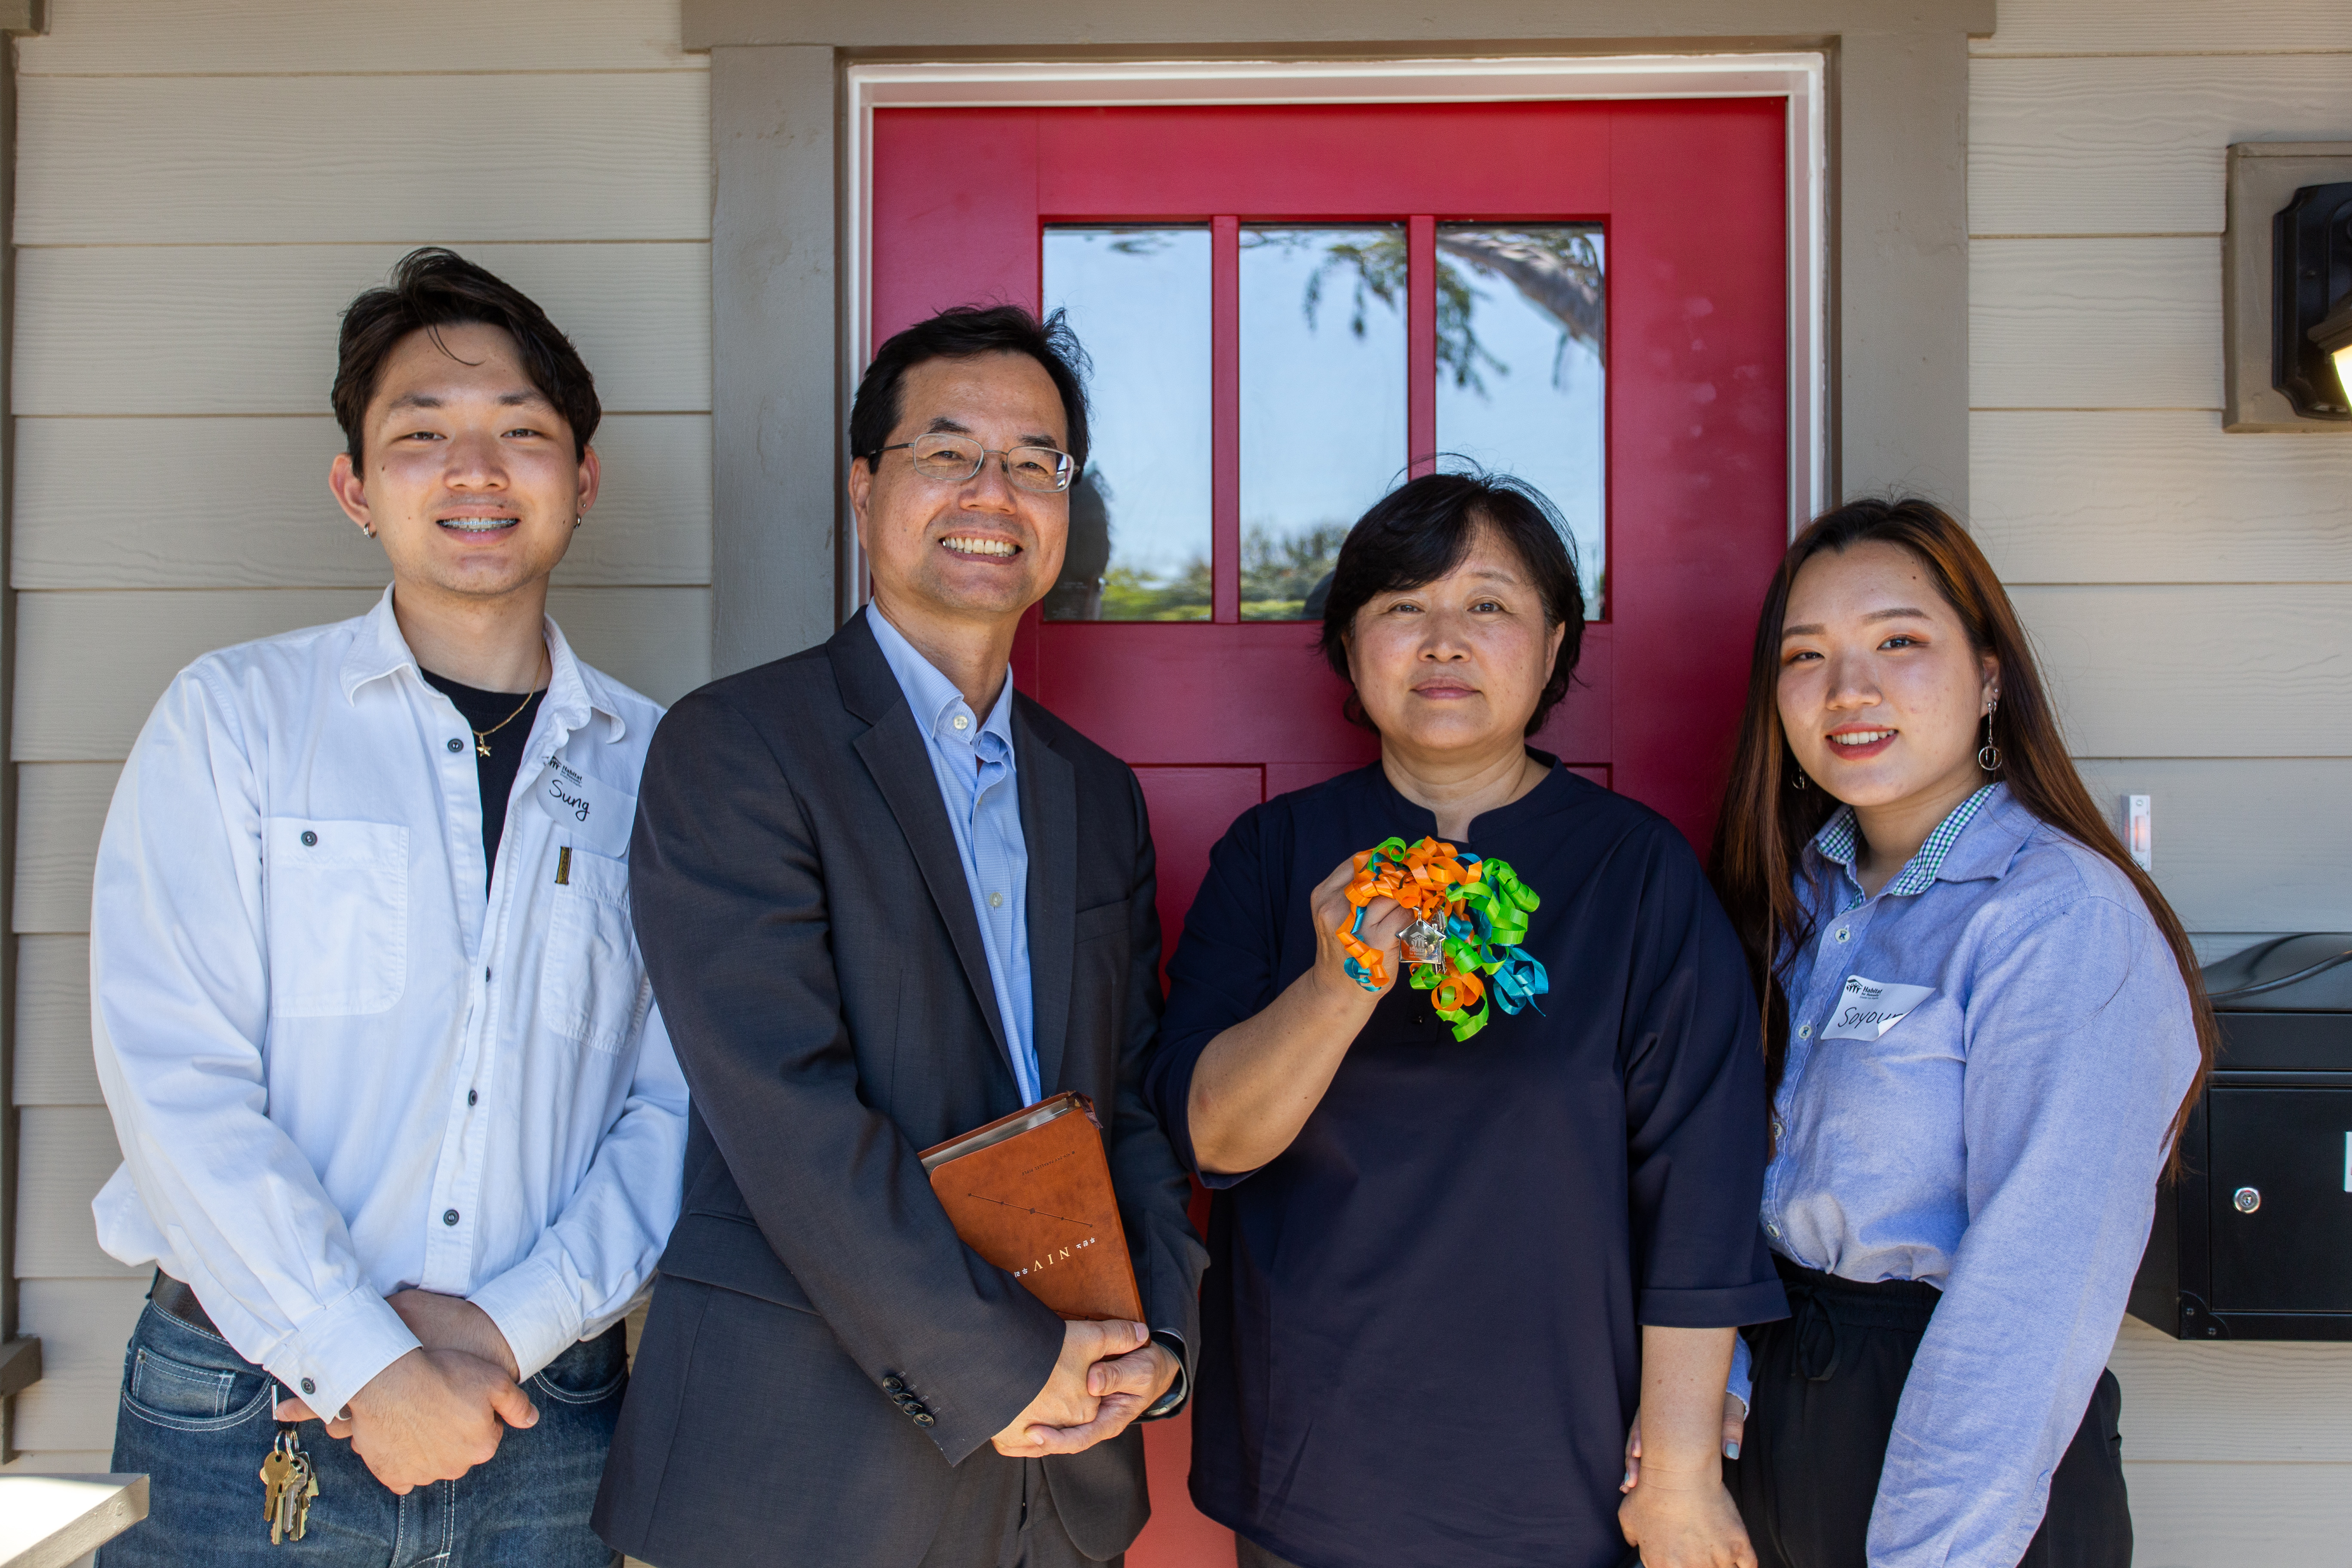 Family holding keys standing in front of their new home.